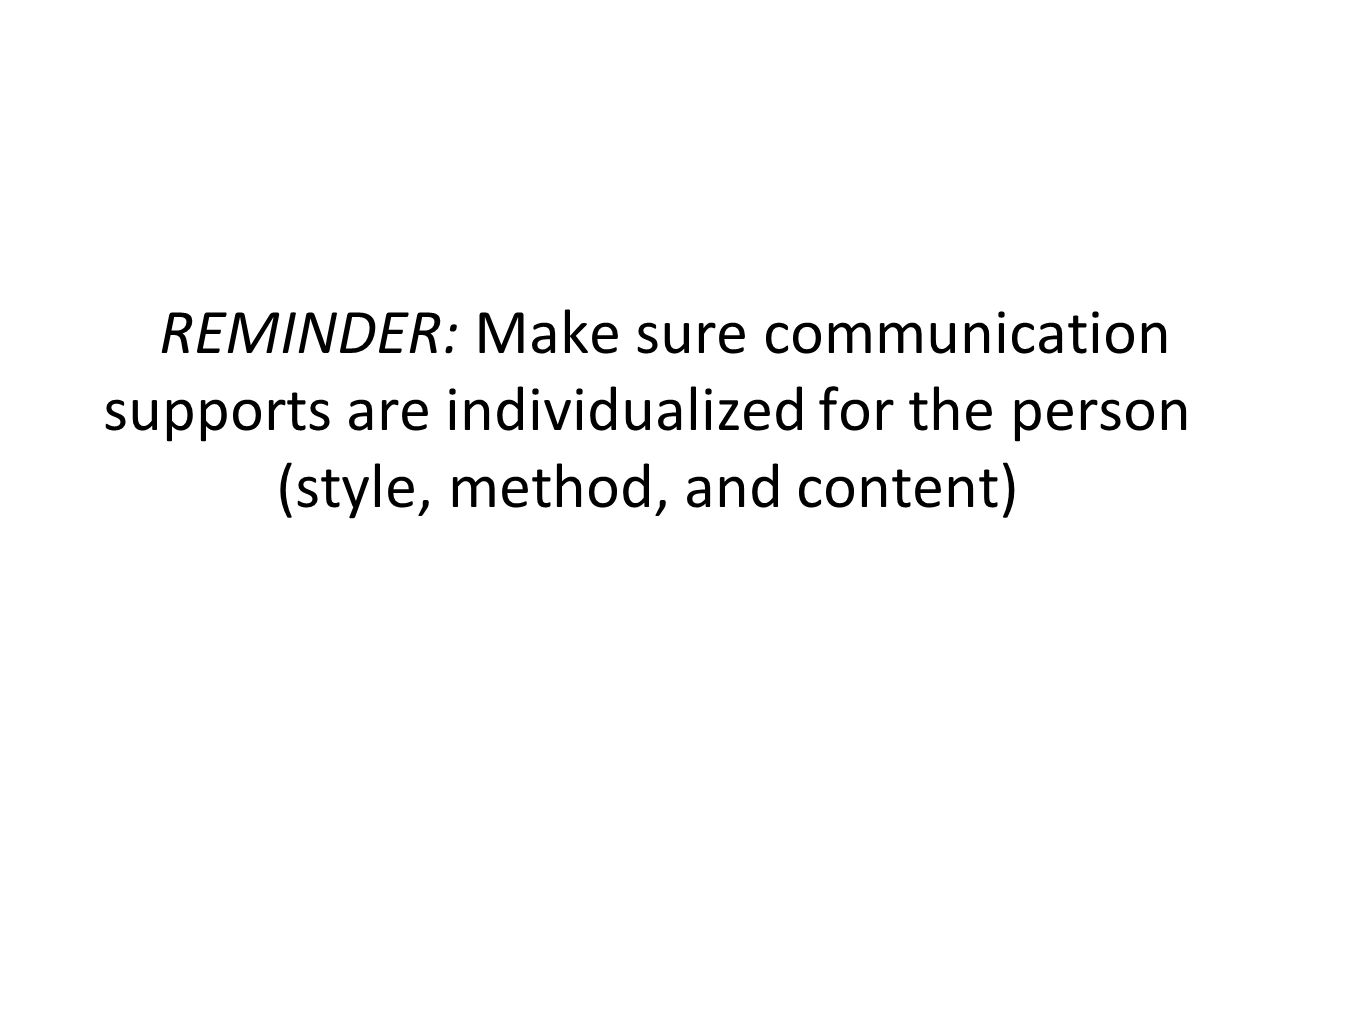 REMINDER: Make sure communication supports are individualized for the person (style, method, and content)